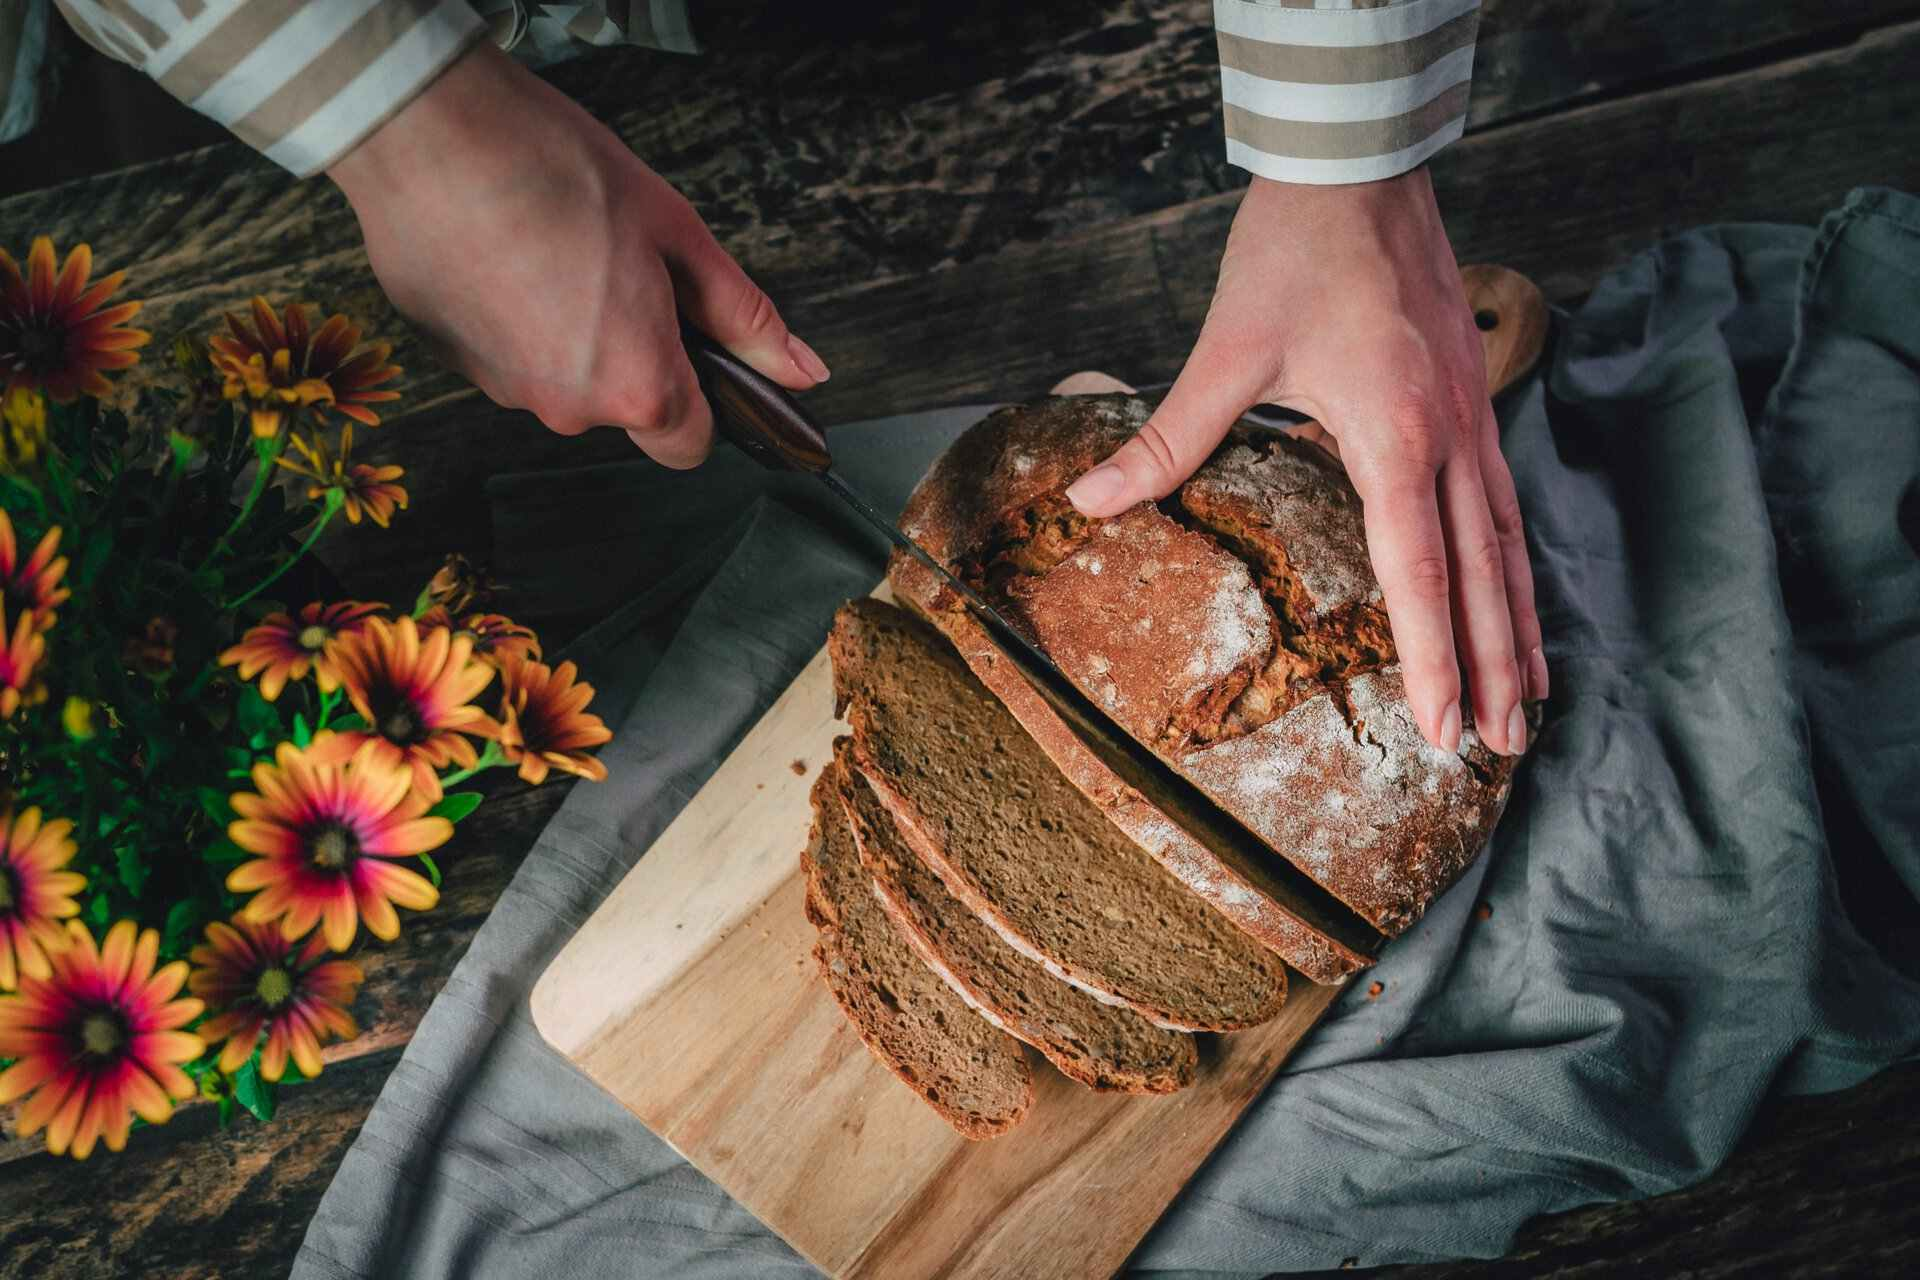 hands-slicing-into-a-loaf-of-brown-bread-on-cutting-board